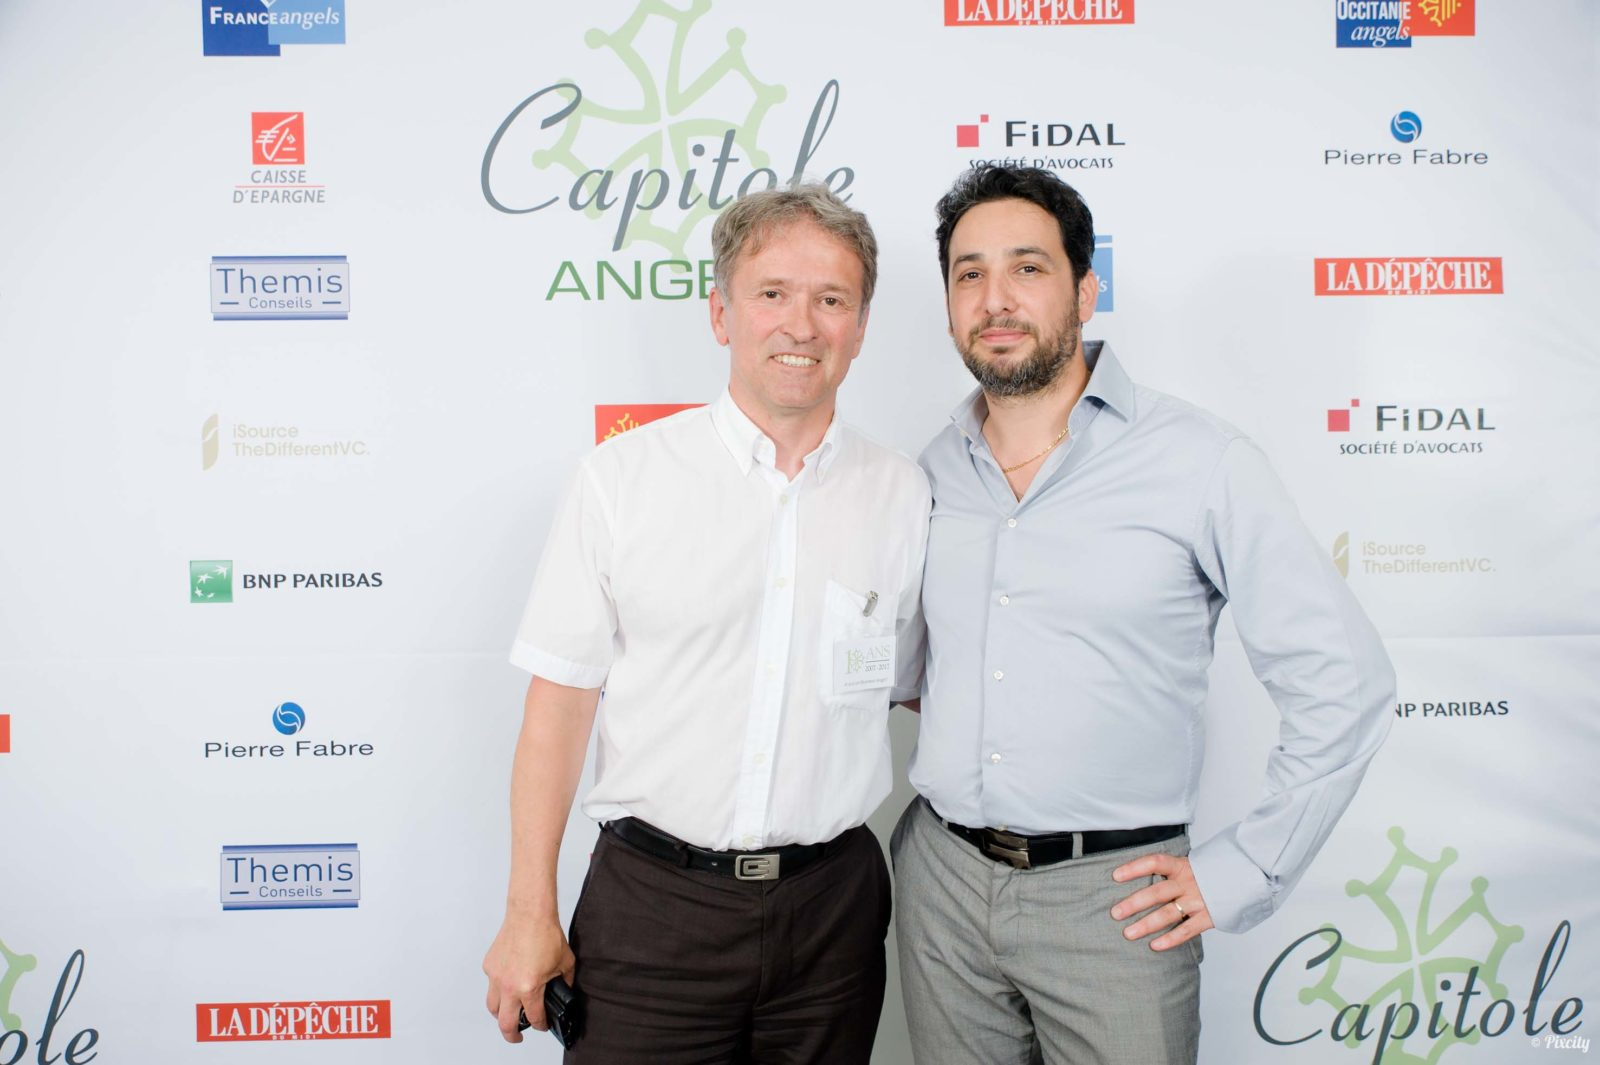 Photocall Capitole Angels